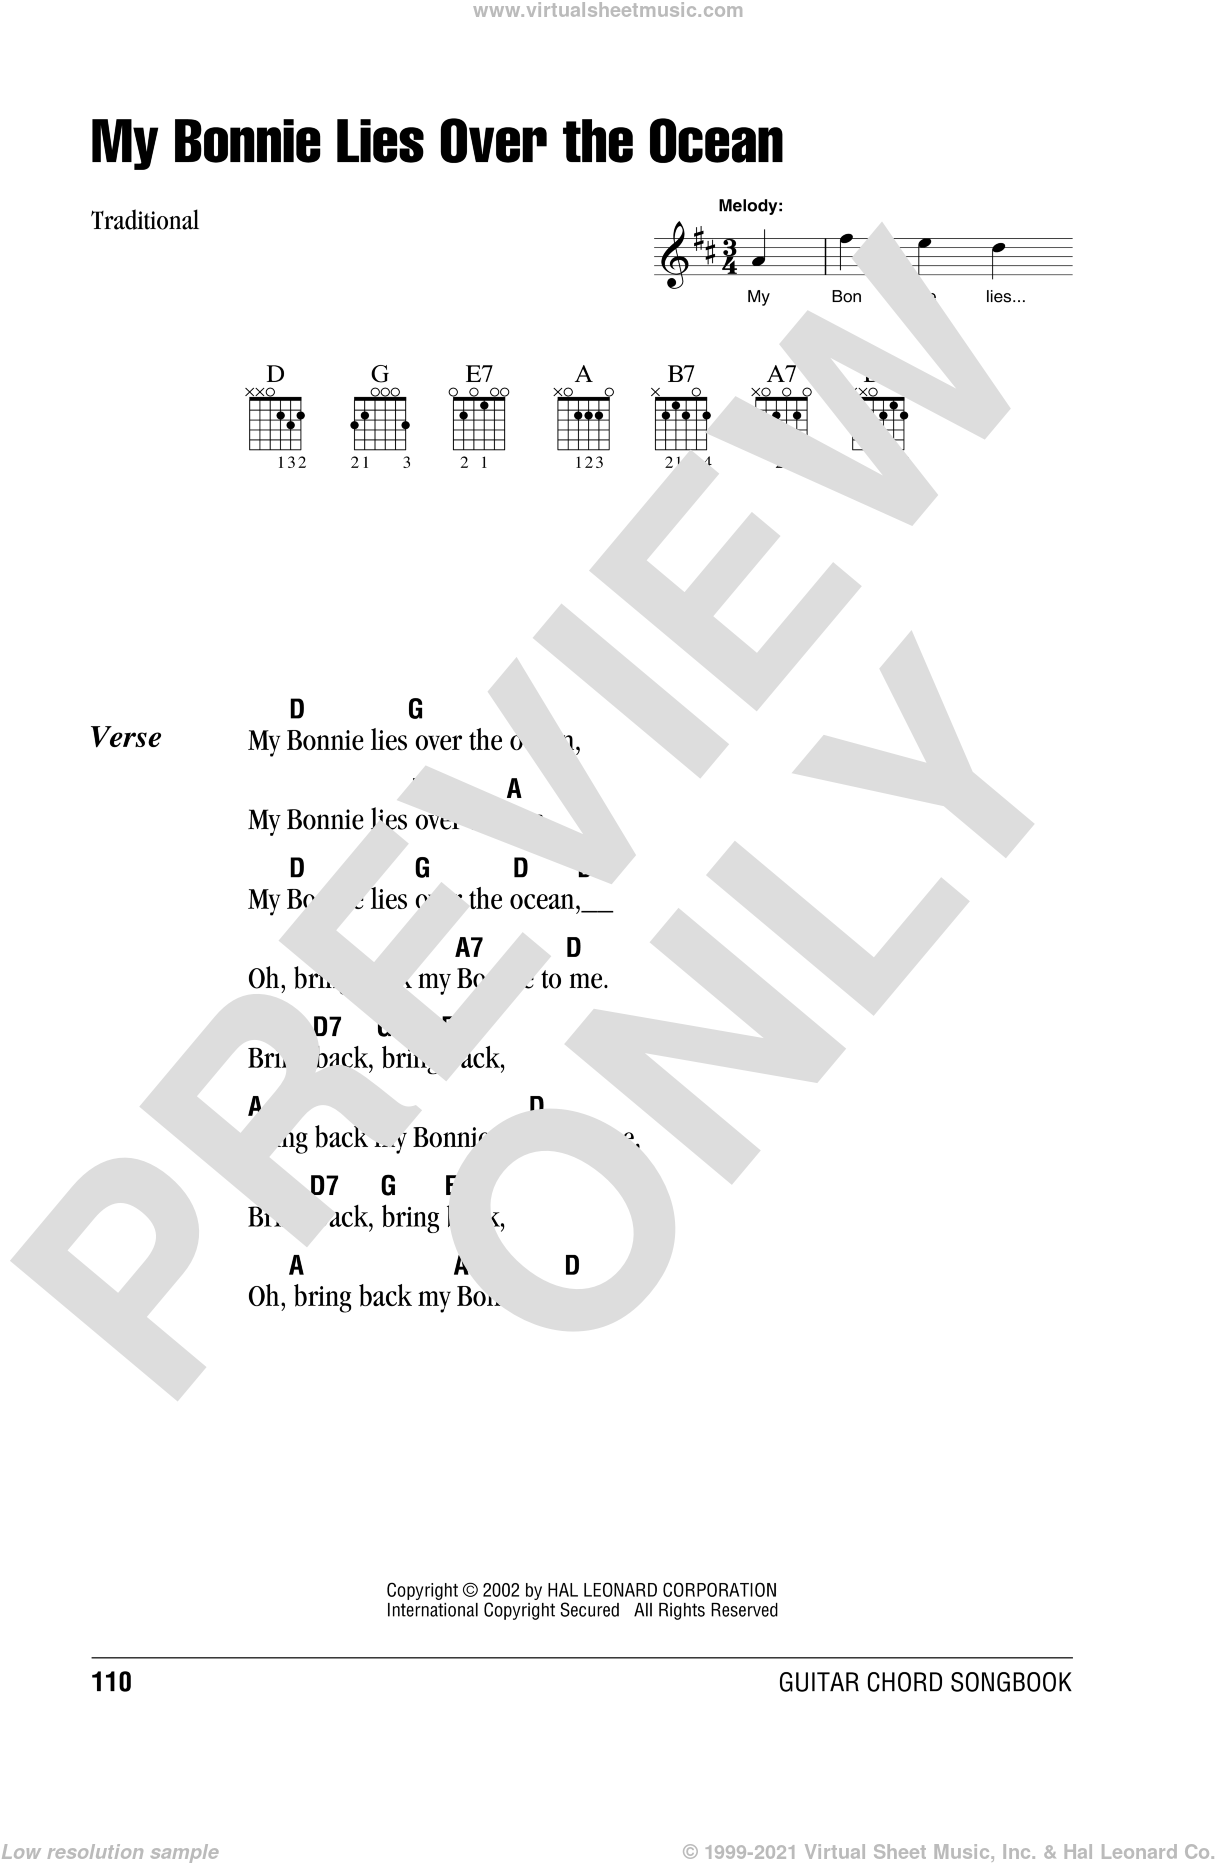 My Bonnie Lies Over The Ocean sheet music for guitar (chords). Score Image Preview.